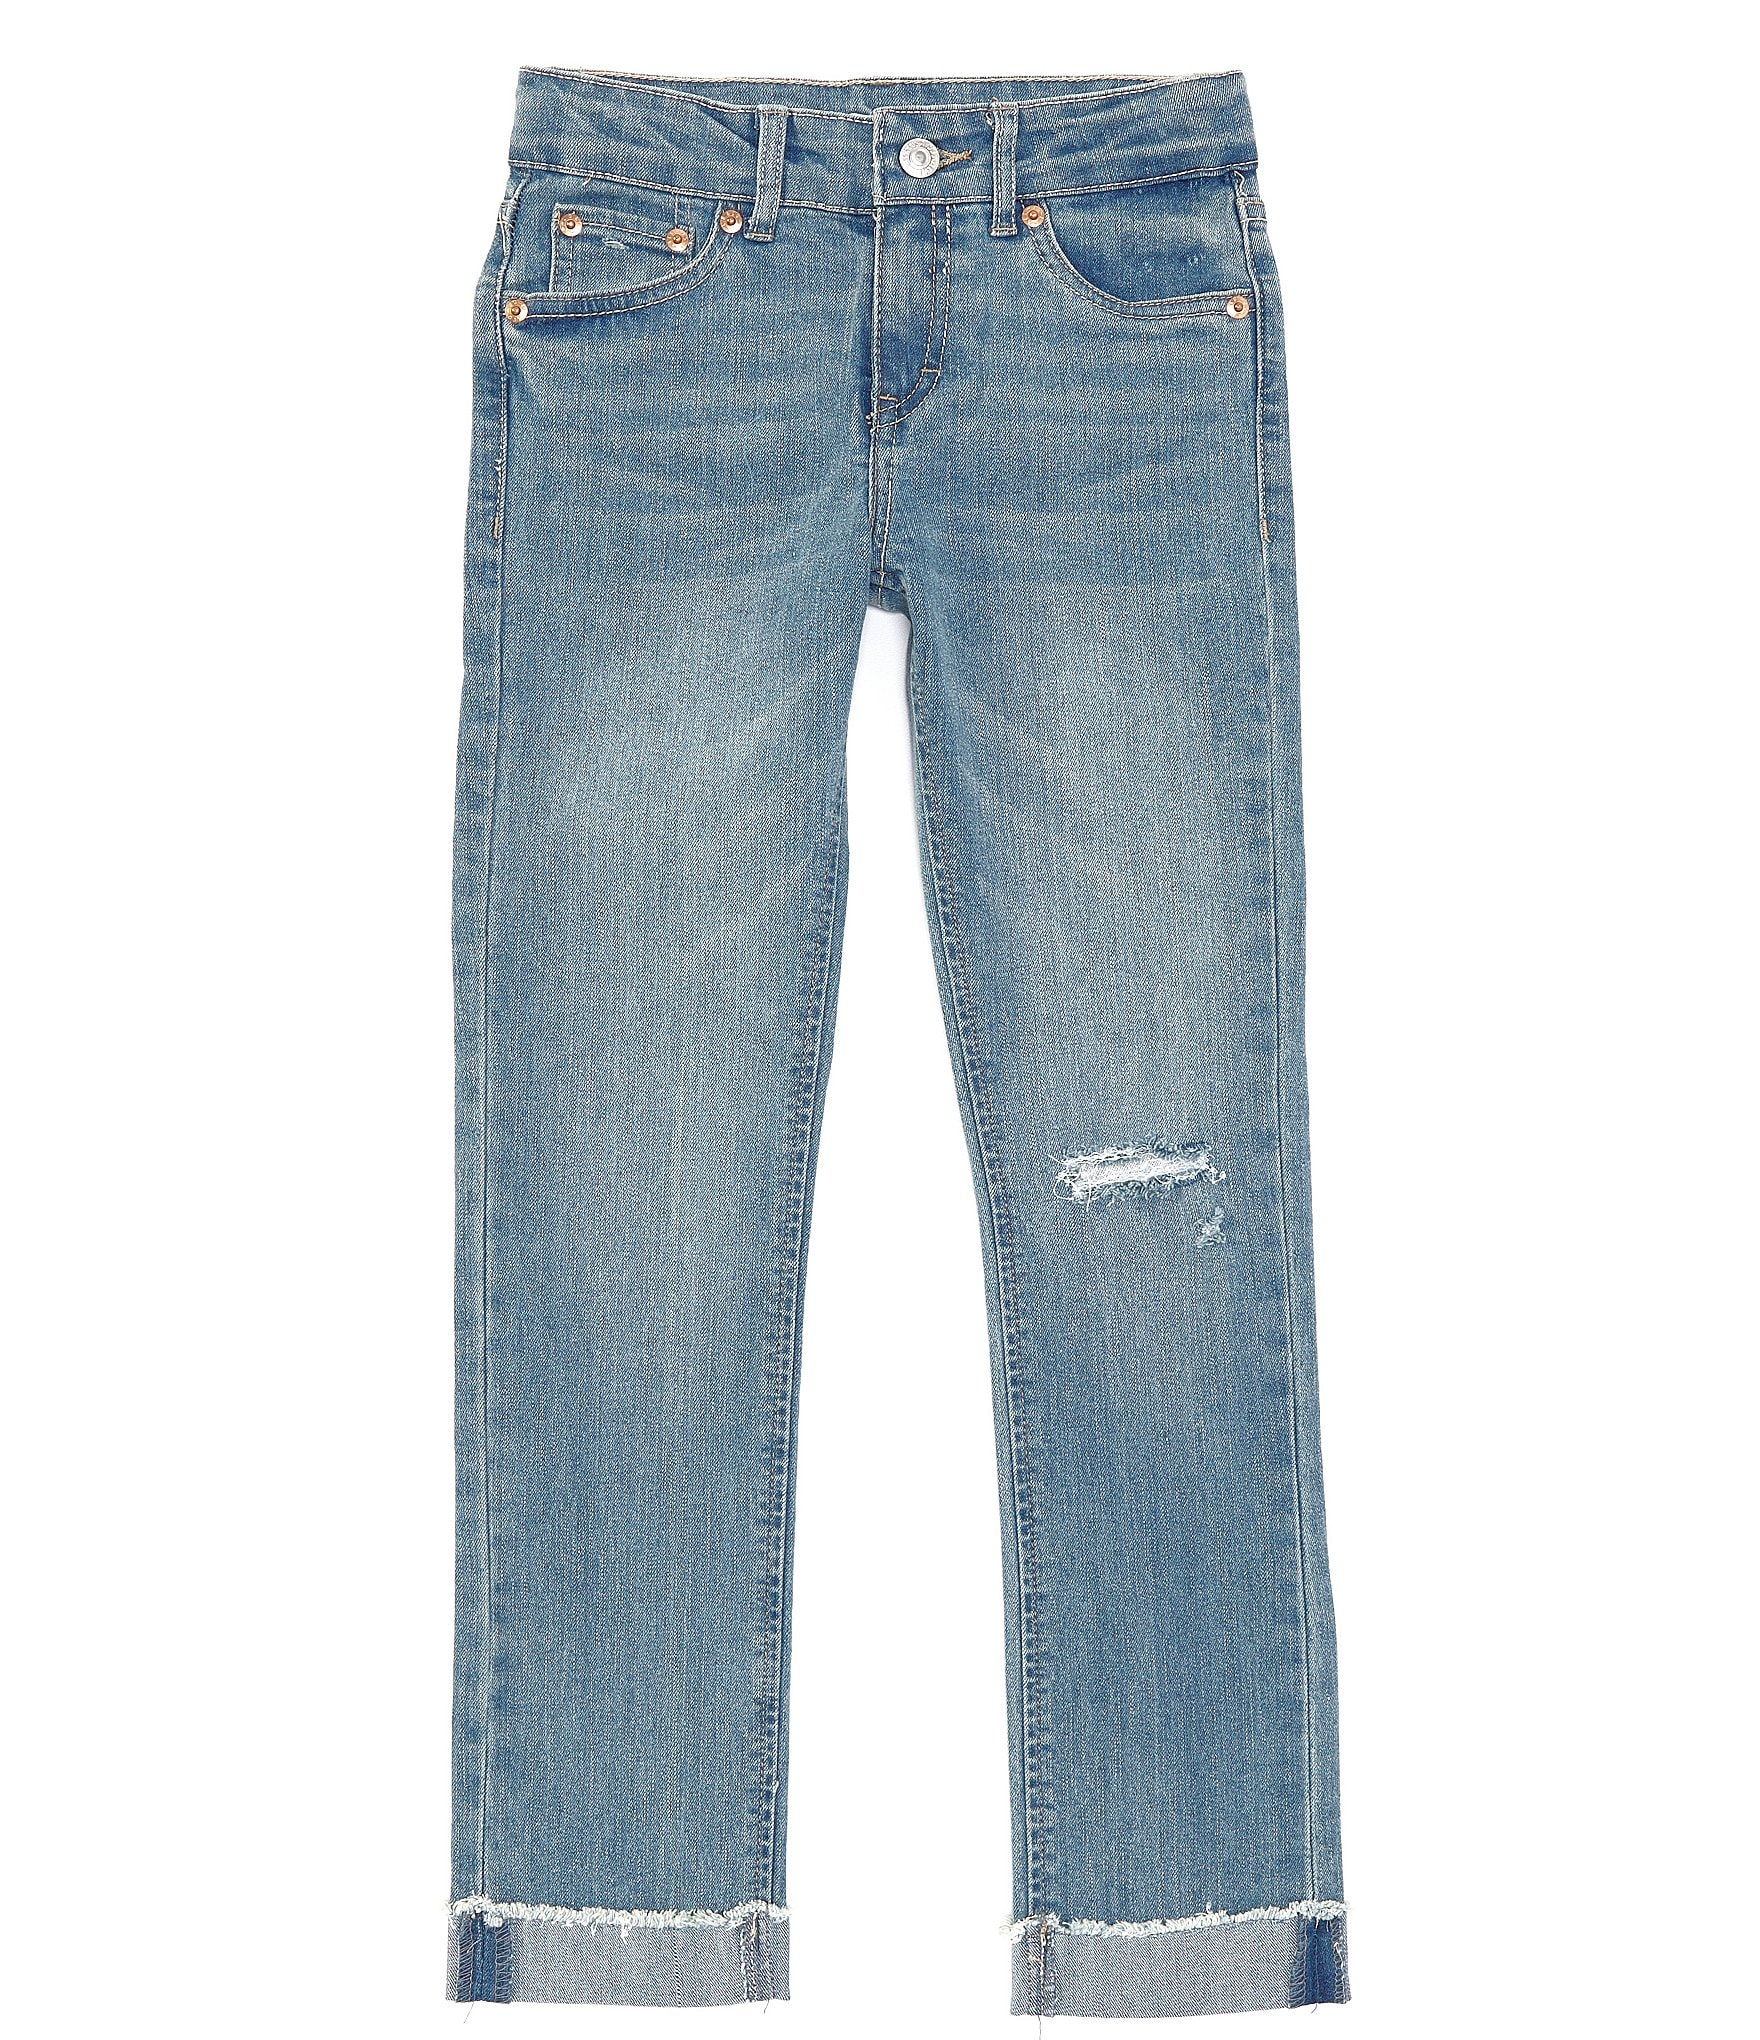 Big Girls 7 16 Girlfriend Denim Jean by Levi's